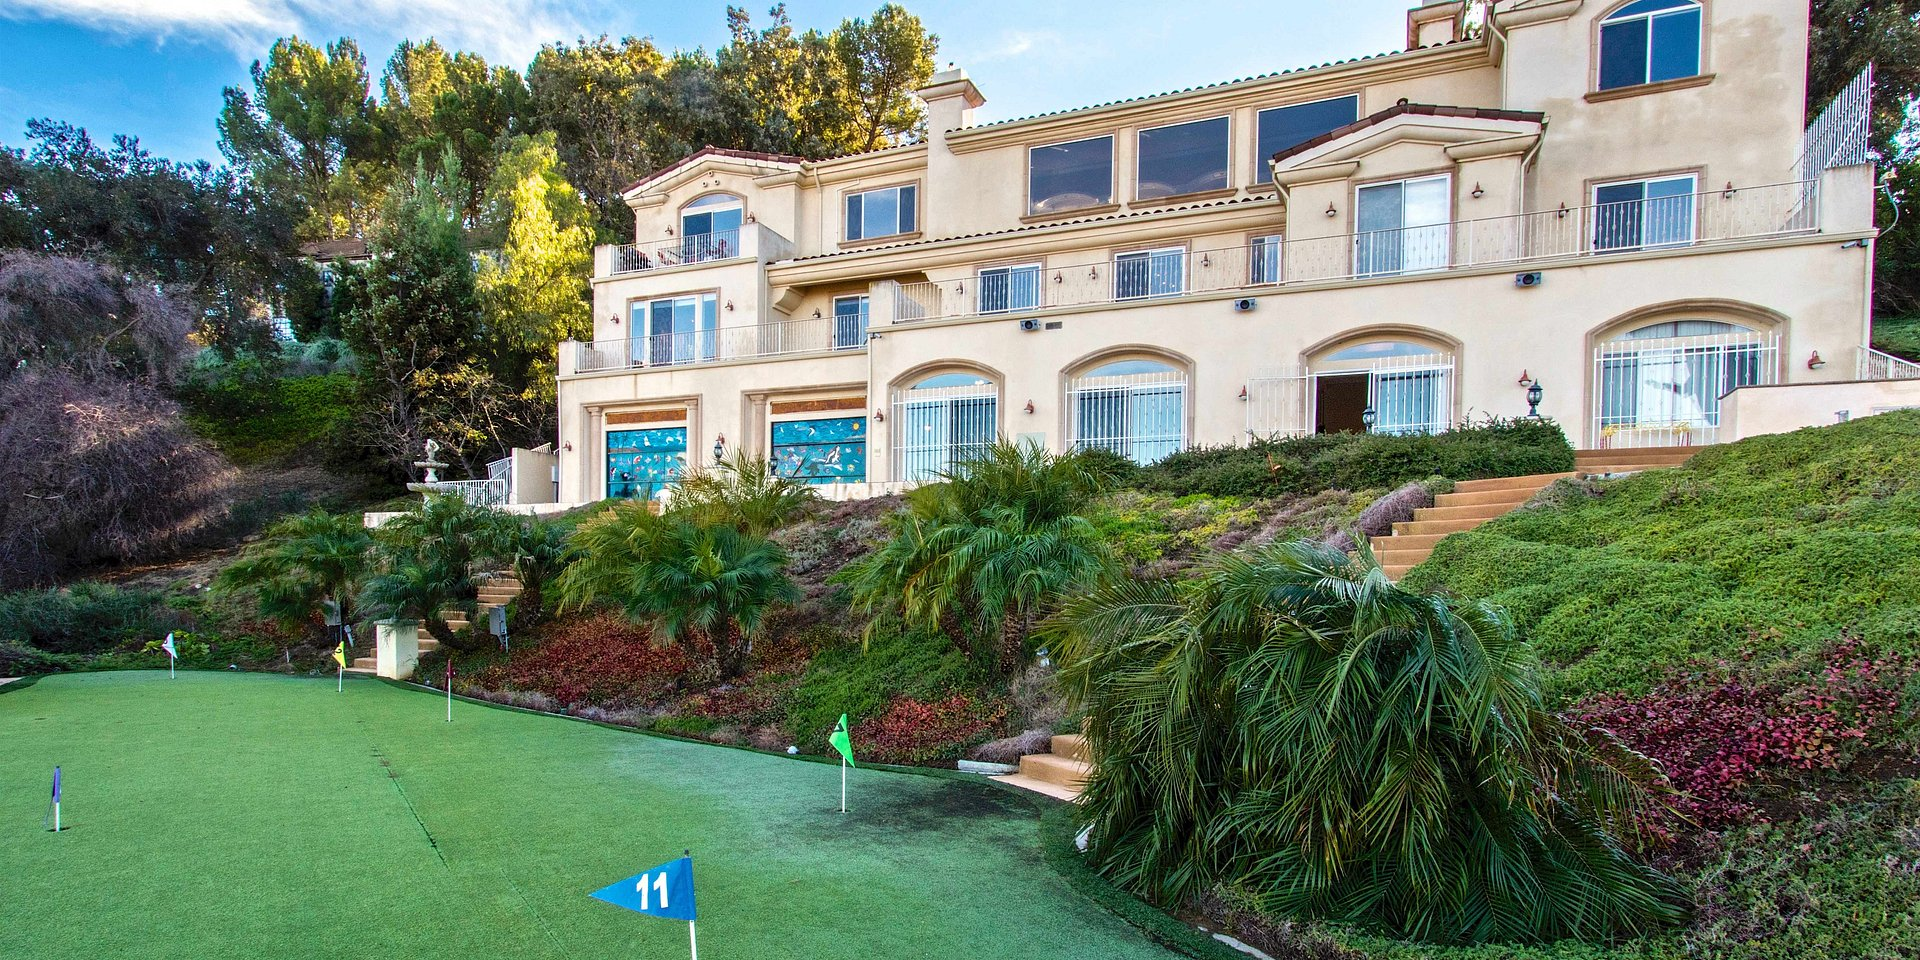 Coldwell Banker Residential Brokerage Lists the Los Angeles Property for $8.995 Million